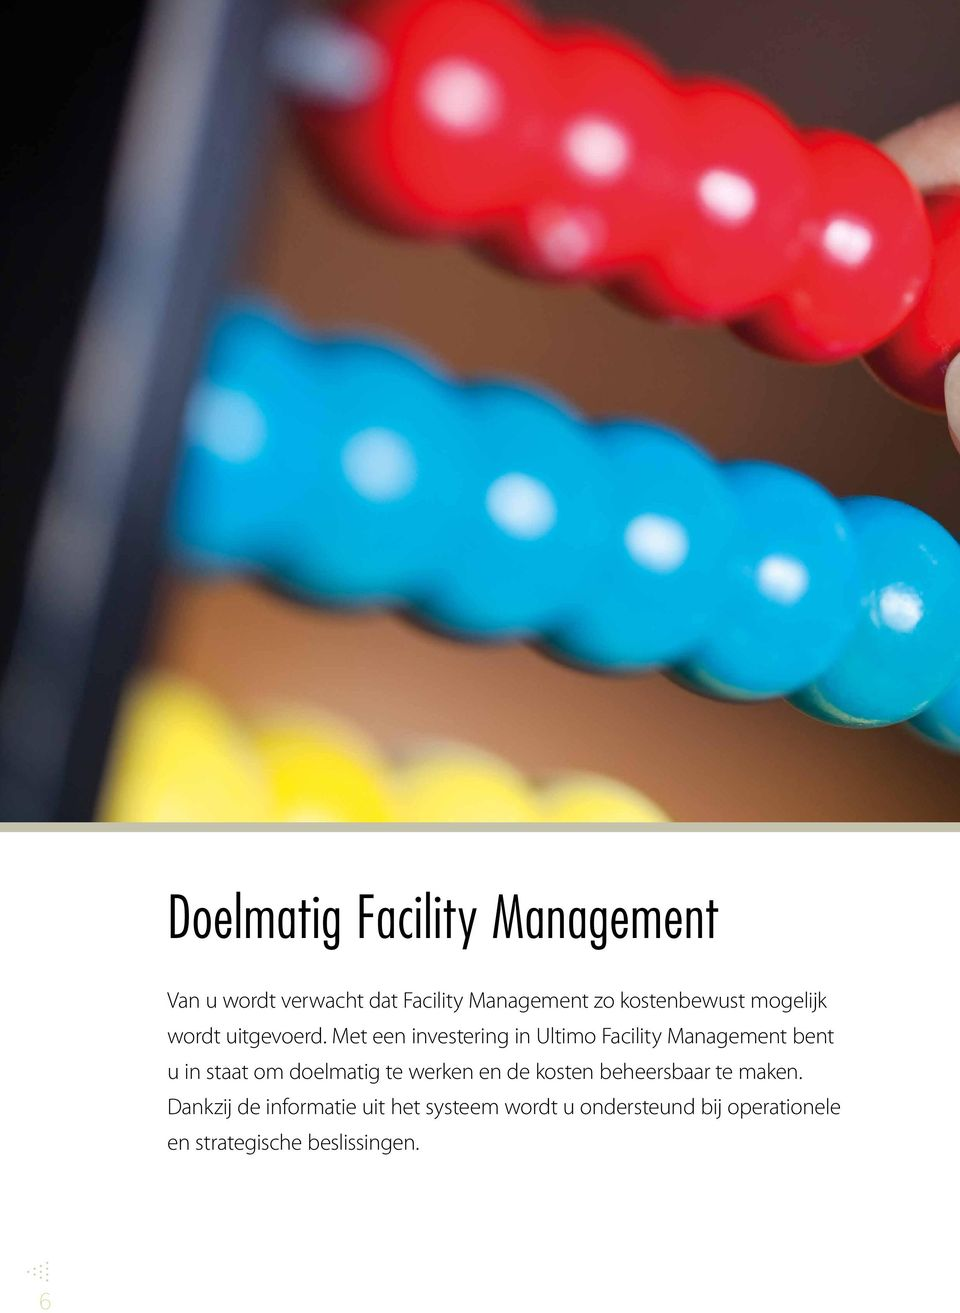 Met een investering in Ultimo Facility Management bent u in staat om doelmatig te